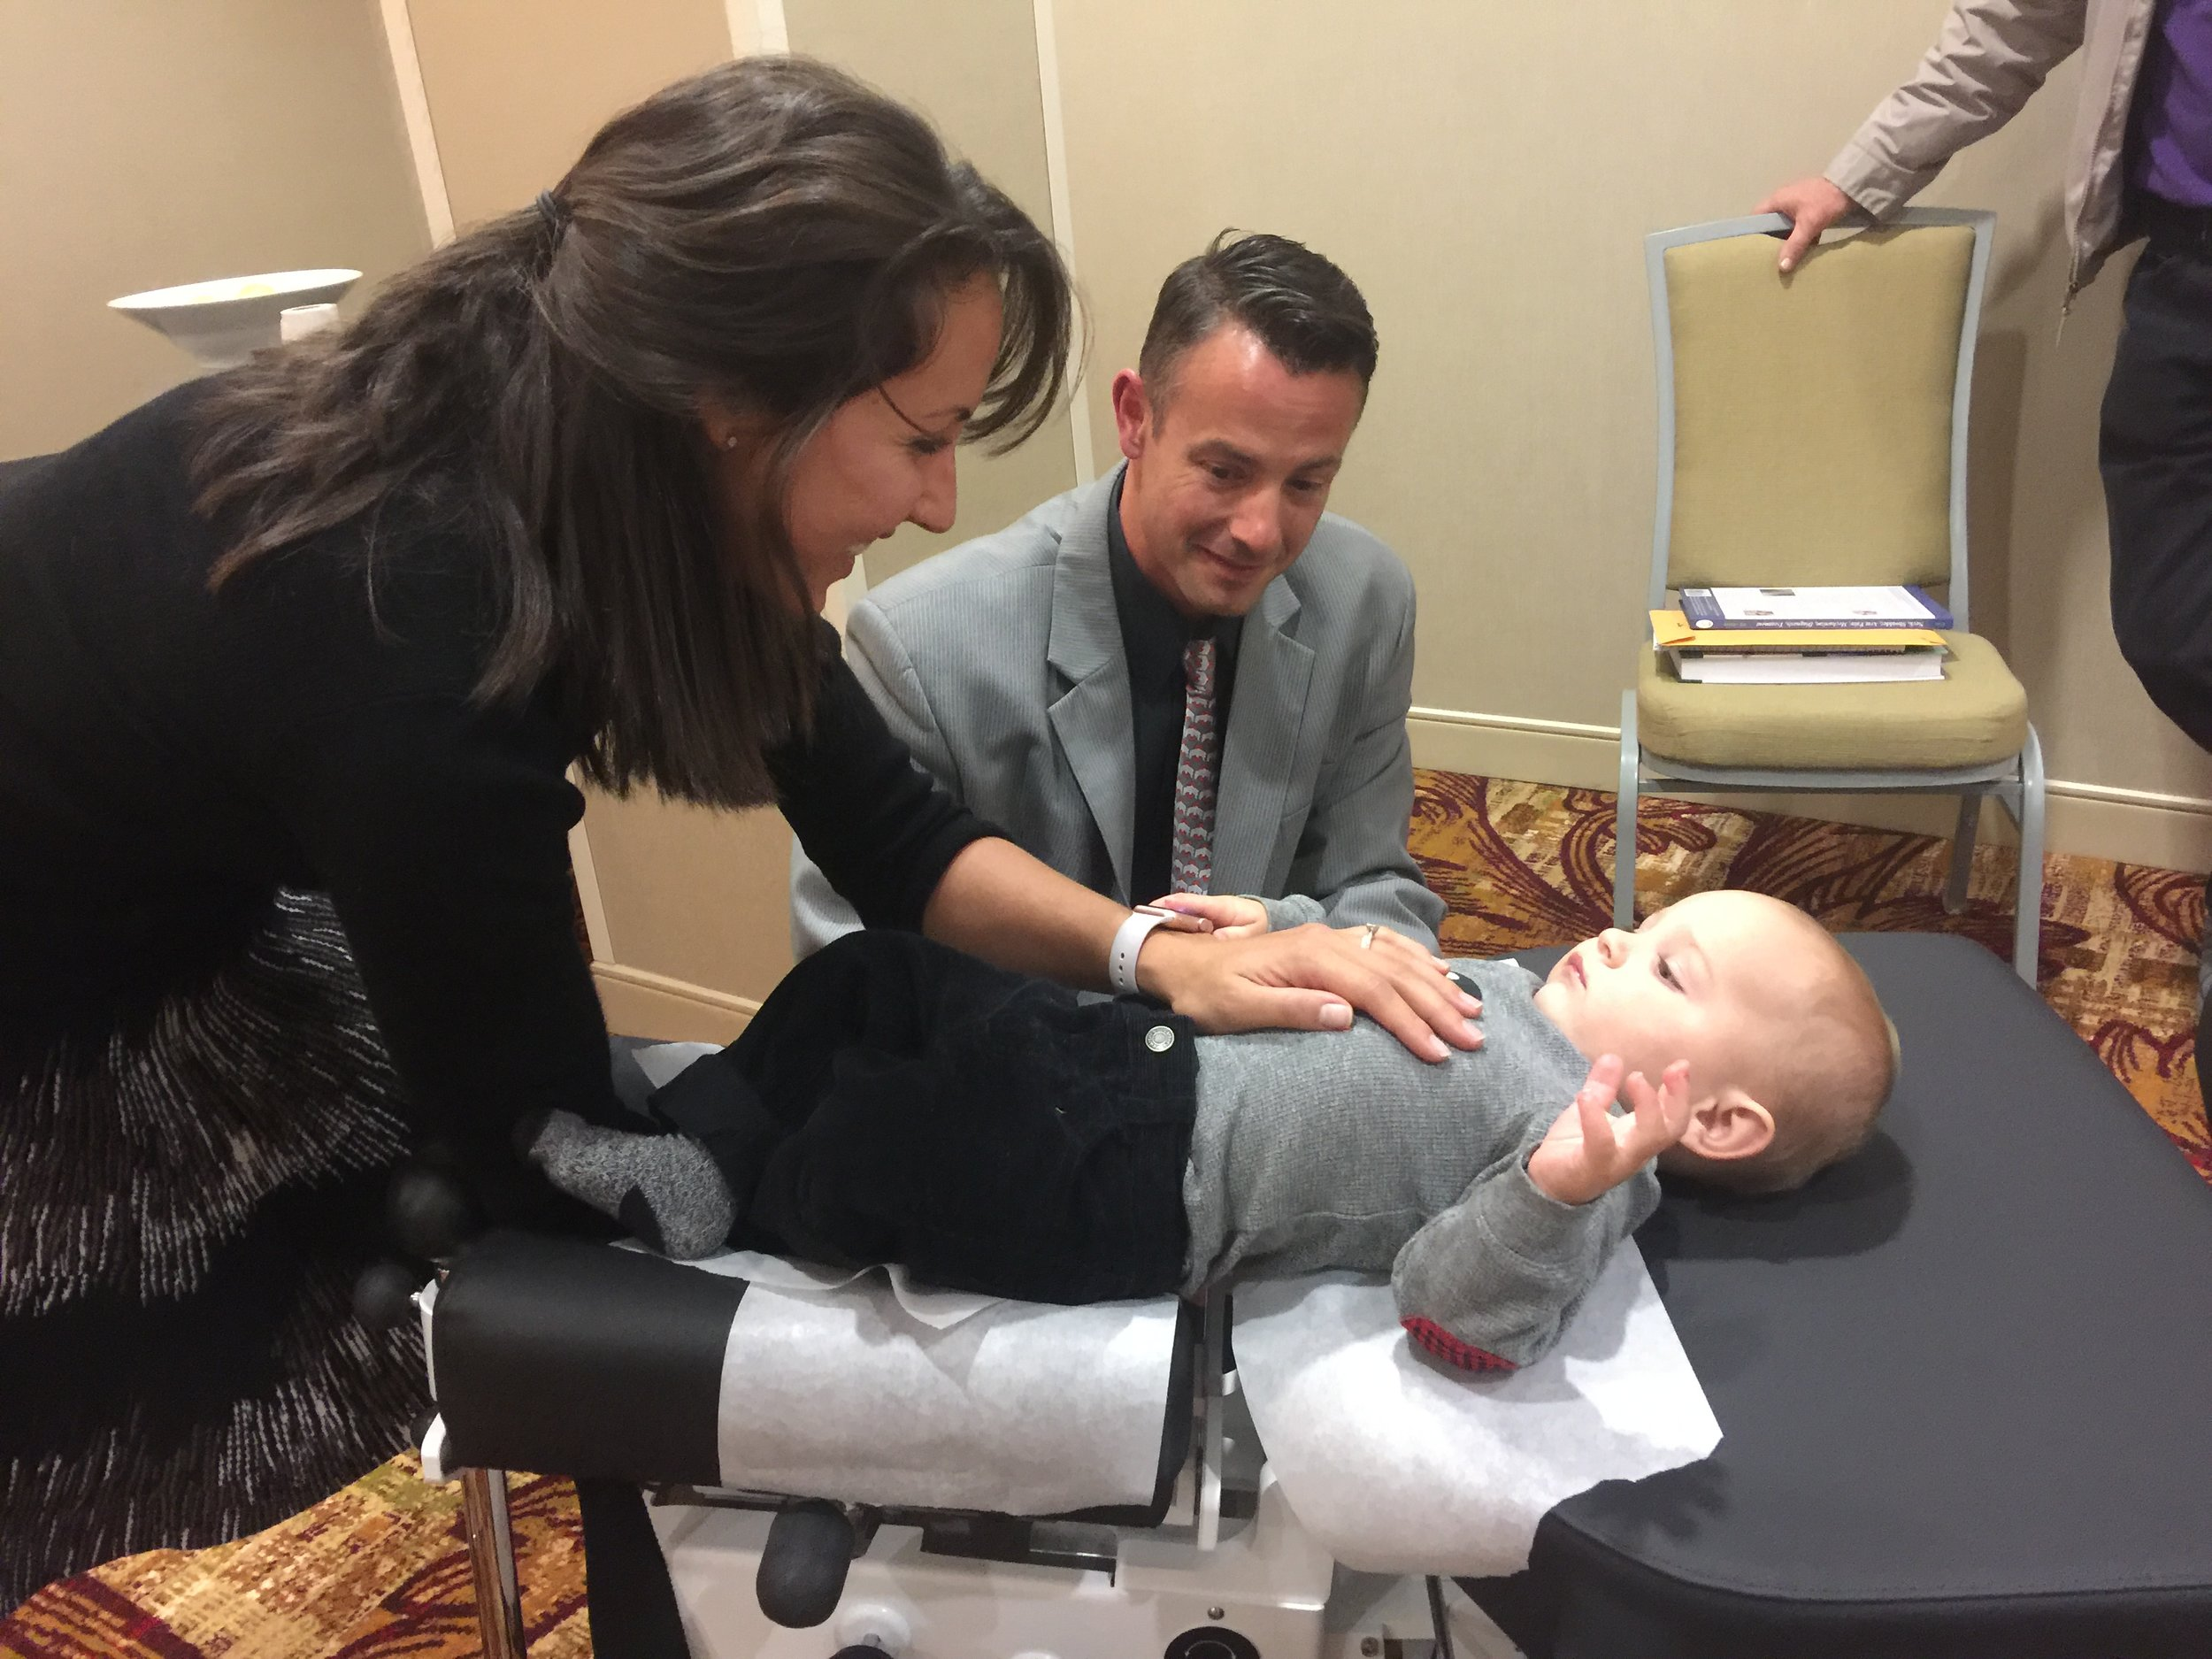 Dr. Heppe performing cox® technique on a 7 month old baby.